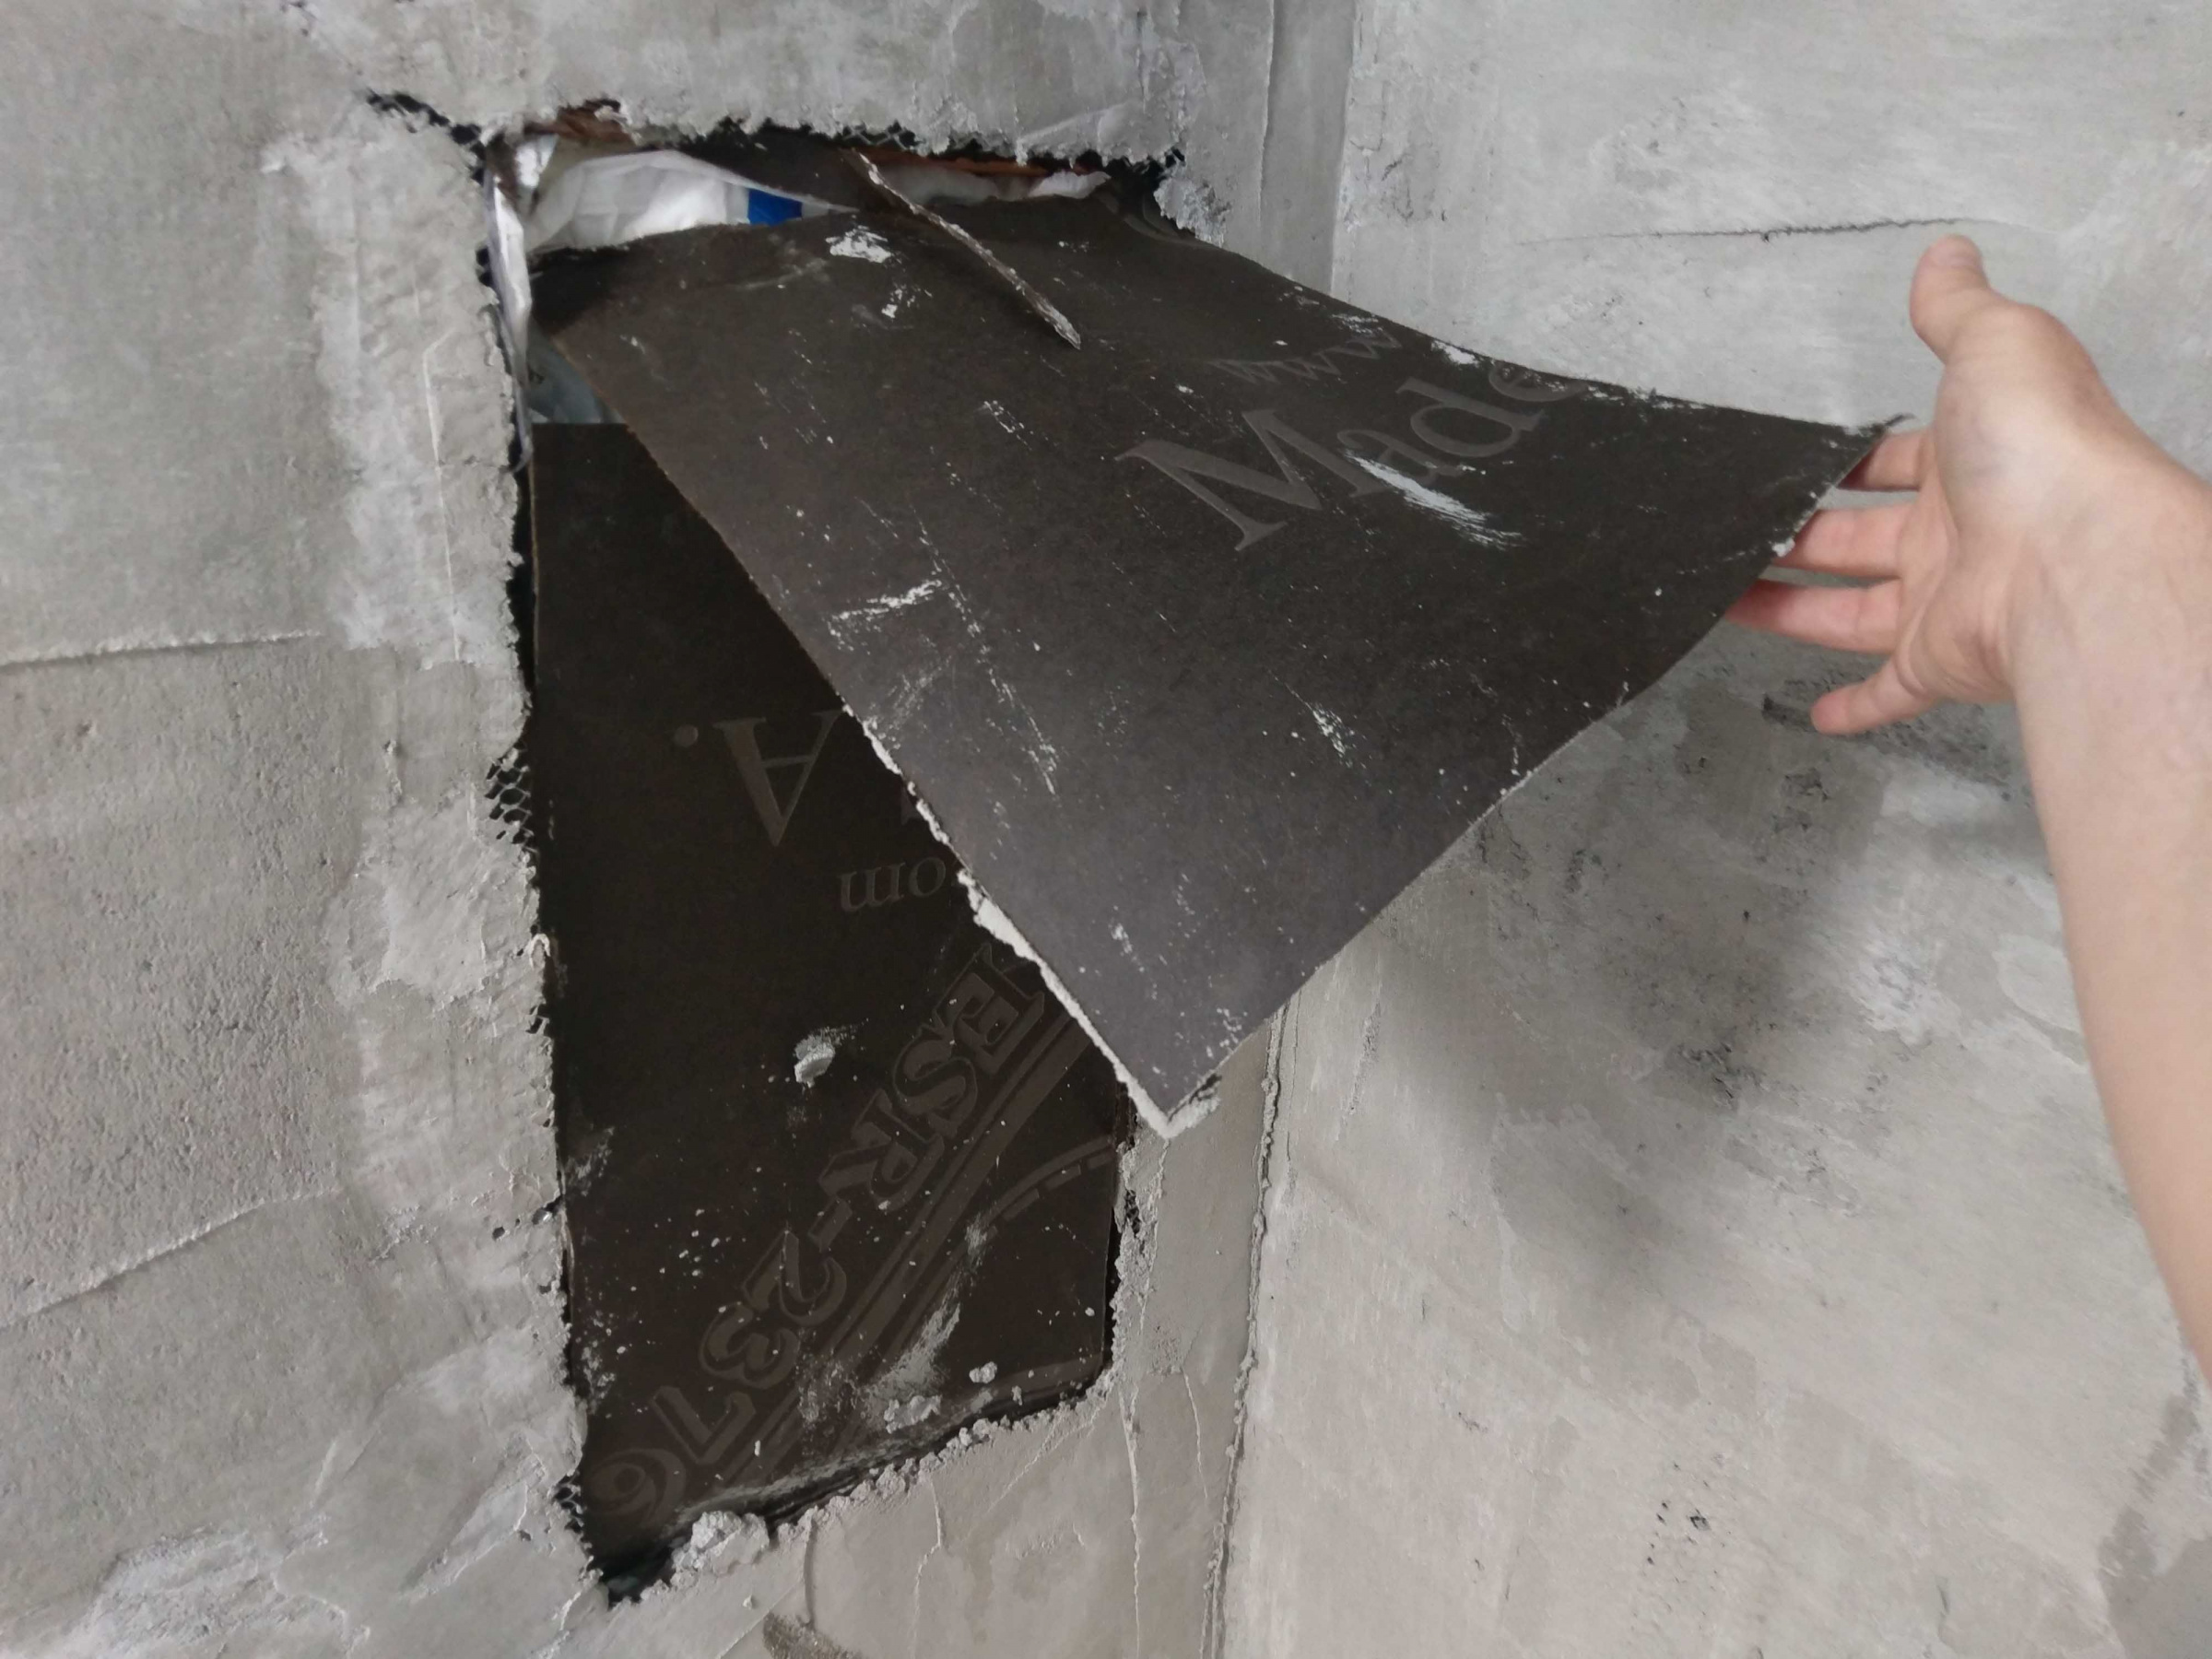 Floating Tile - Should We Be Worried? - Torn Paper and Mud Gaps-04-niche.jpg